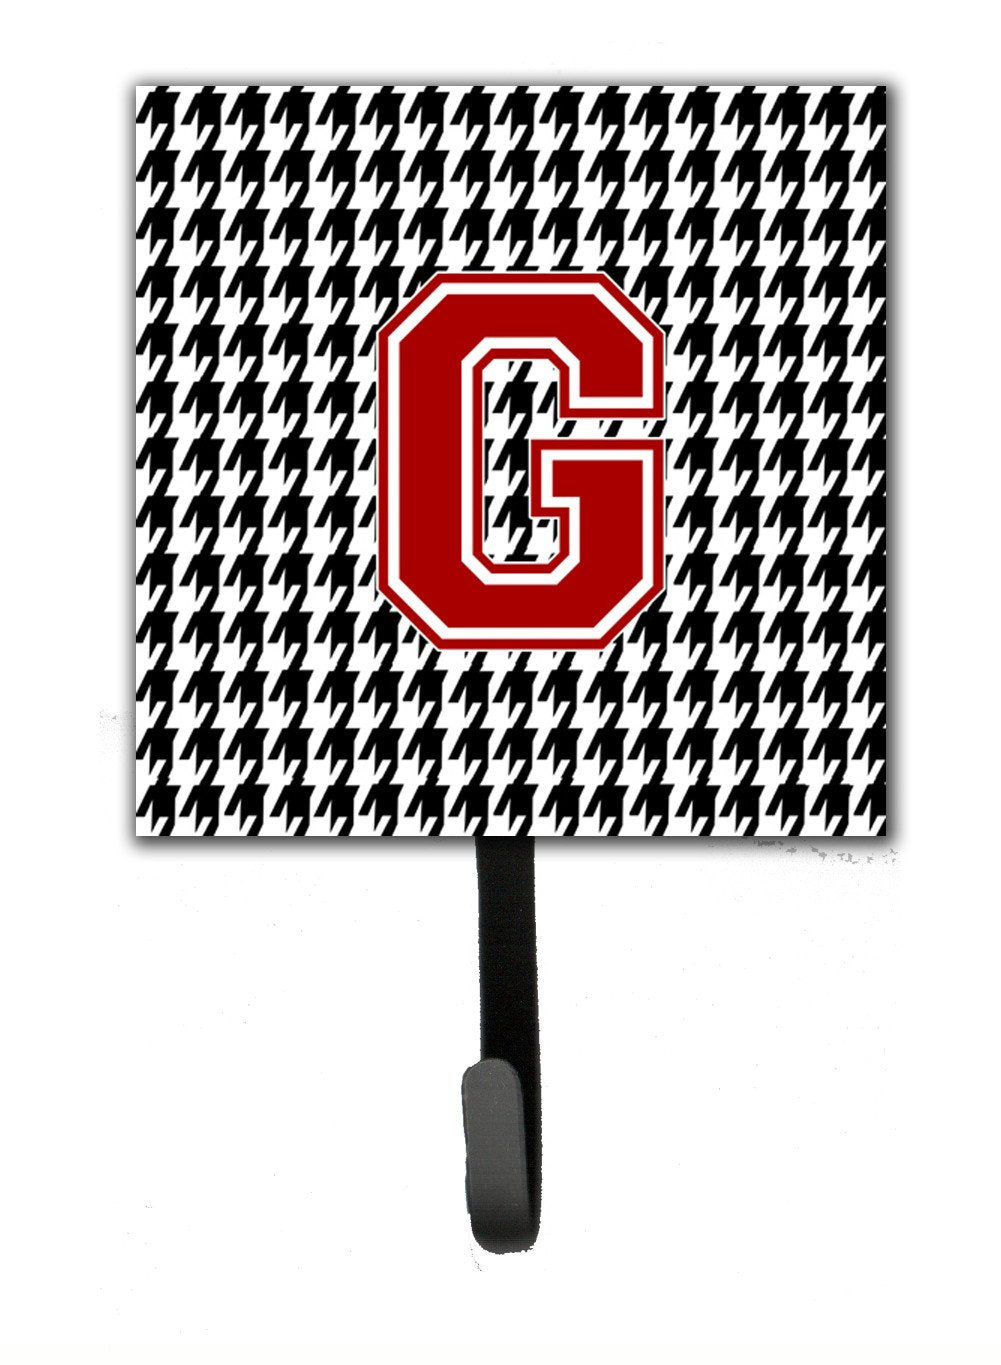 Monogram - Initial G Houndstooth Leash Holder or Key Hook CJ1021 by Caroline's Treasures